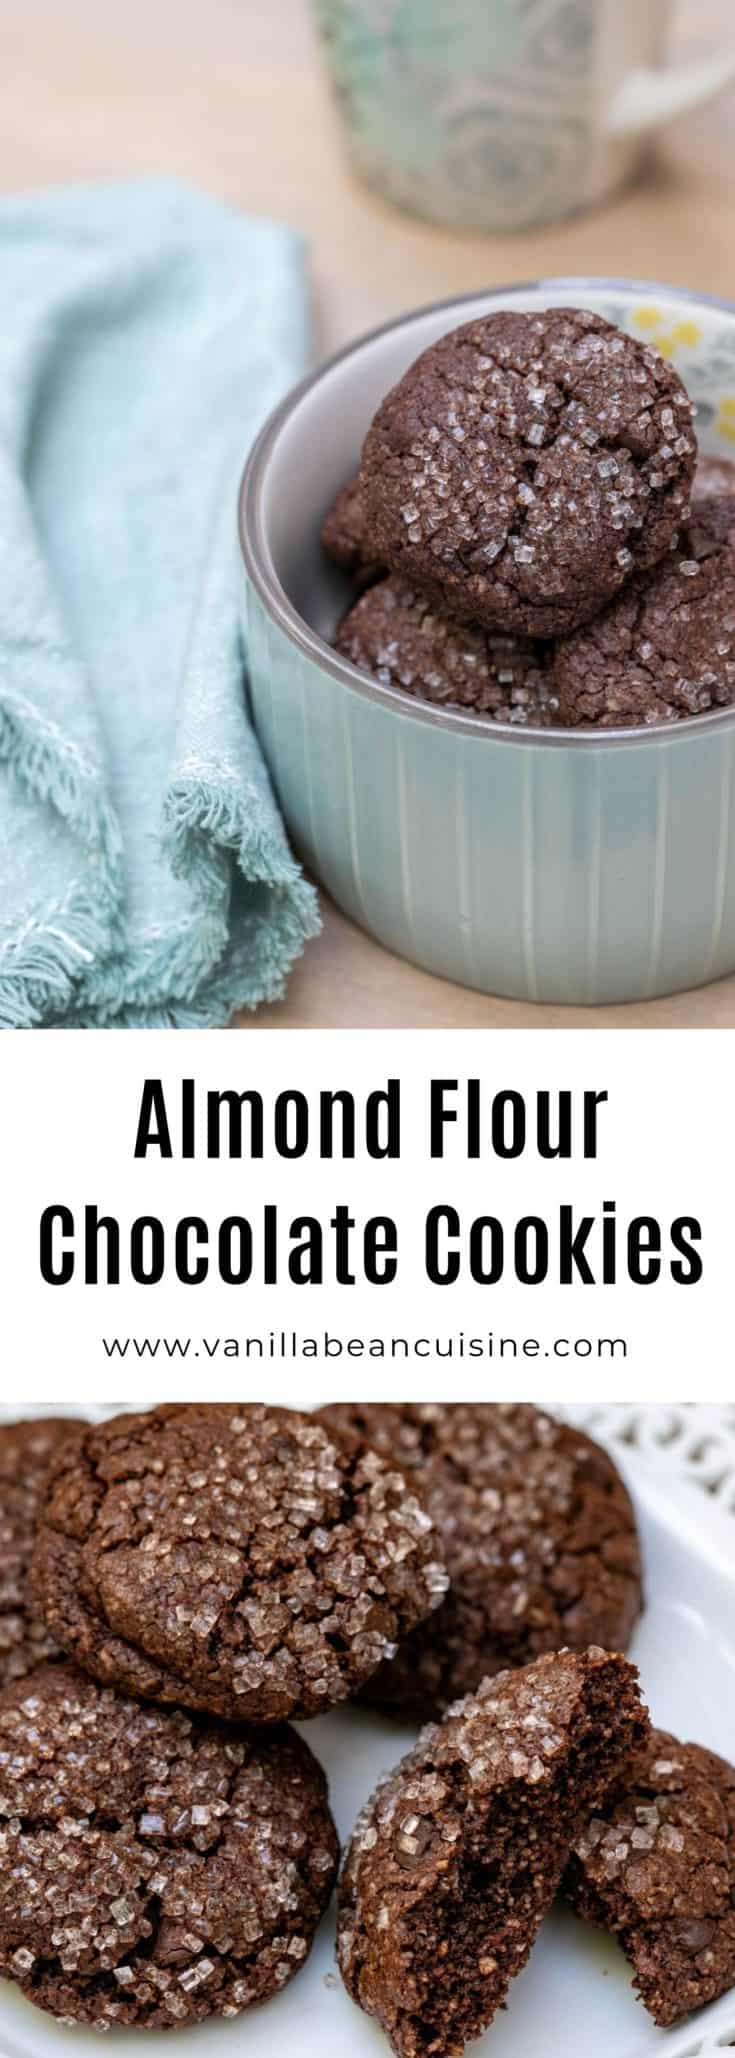 These Almond Flour Chocolate Cookies have a deep dark chocolate flavor and a slight nuttiness. Entirely gluten-free and so easy-to-make—no mixer required. #glutenfree #dessert #cookies #chocolate #vanillabeancuisine